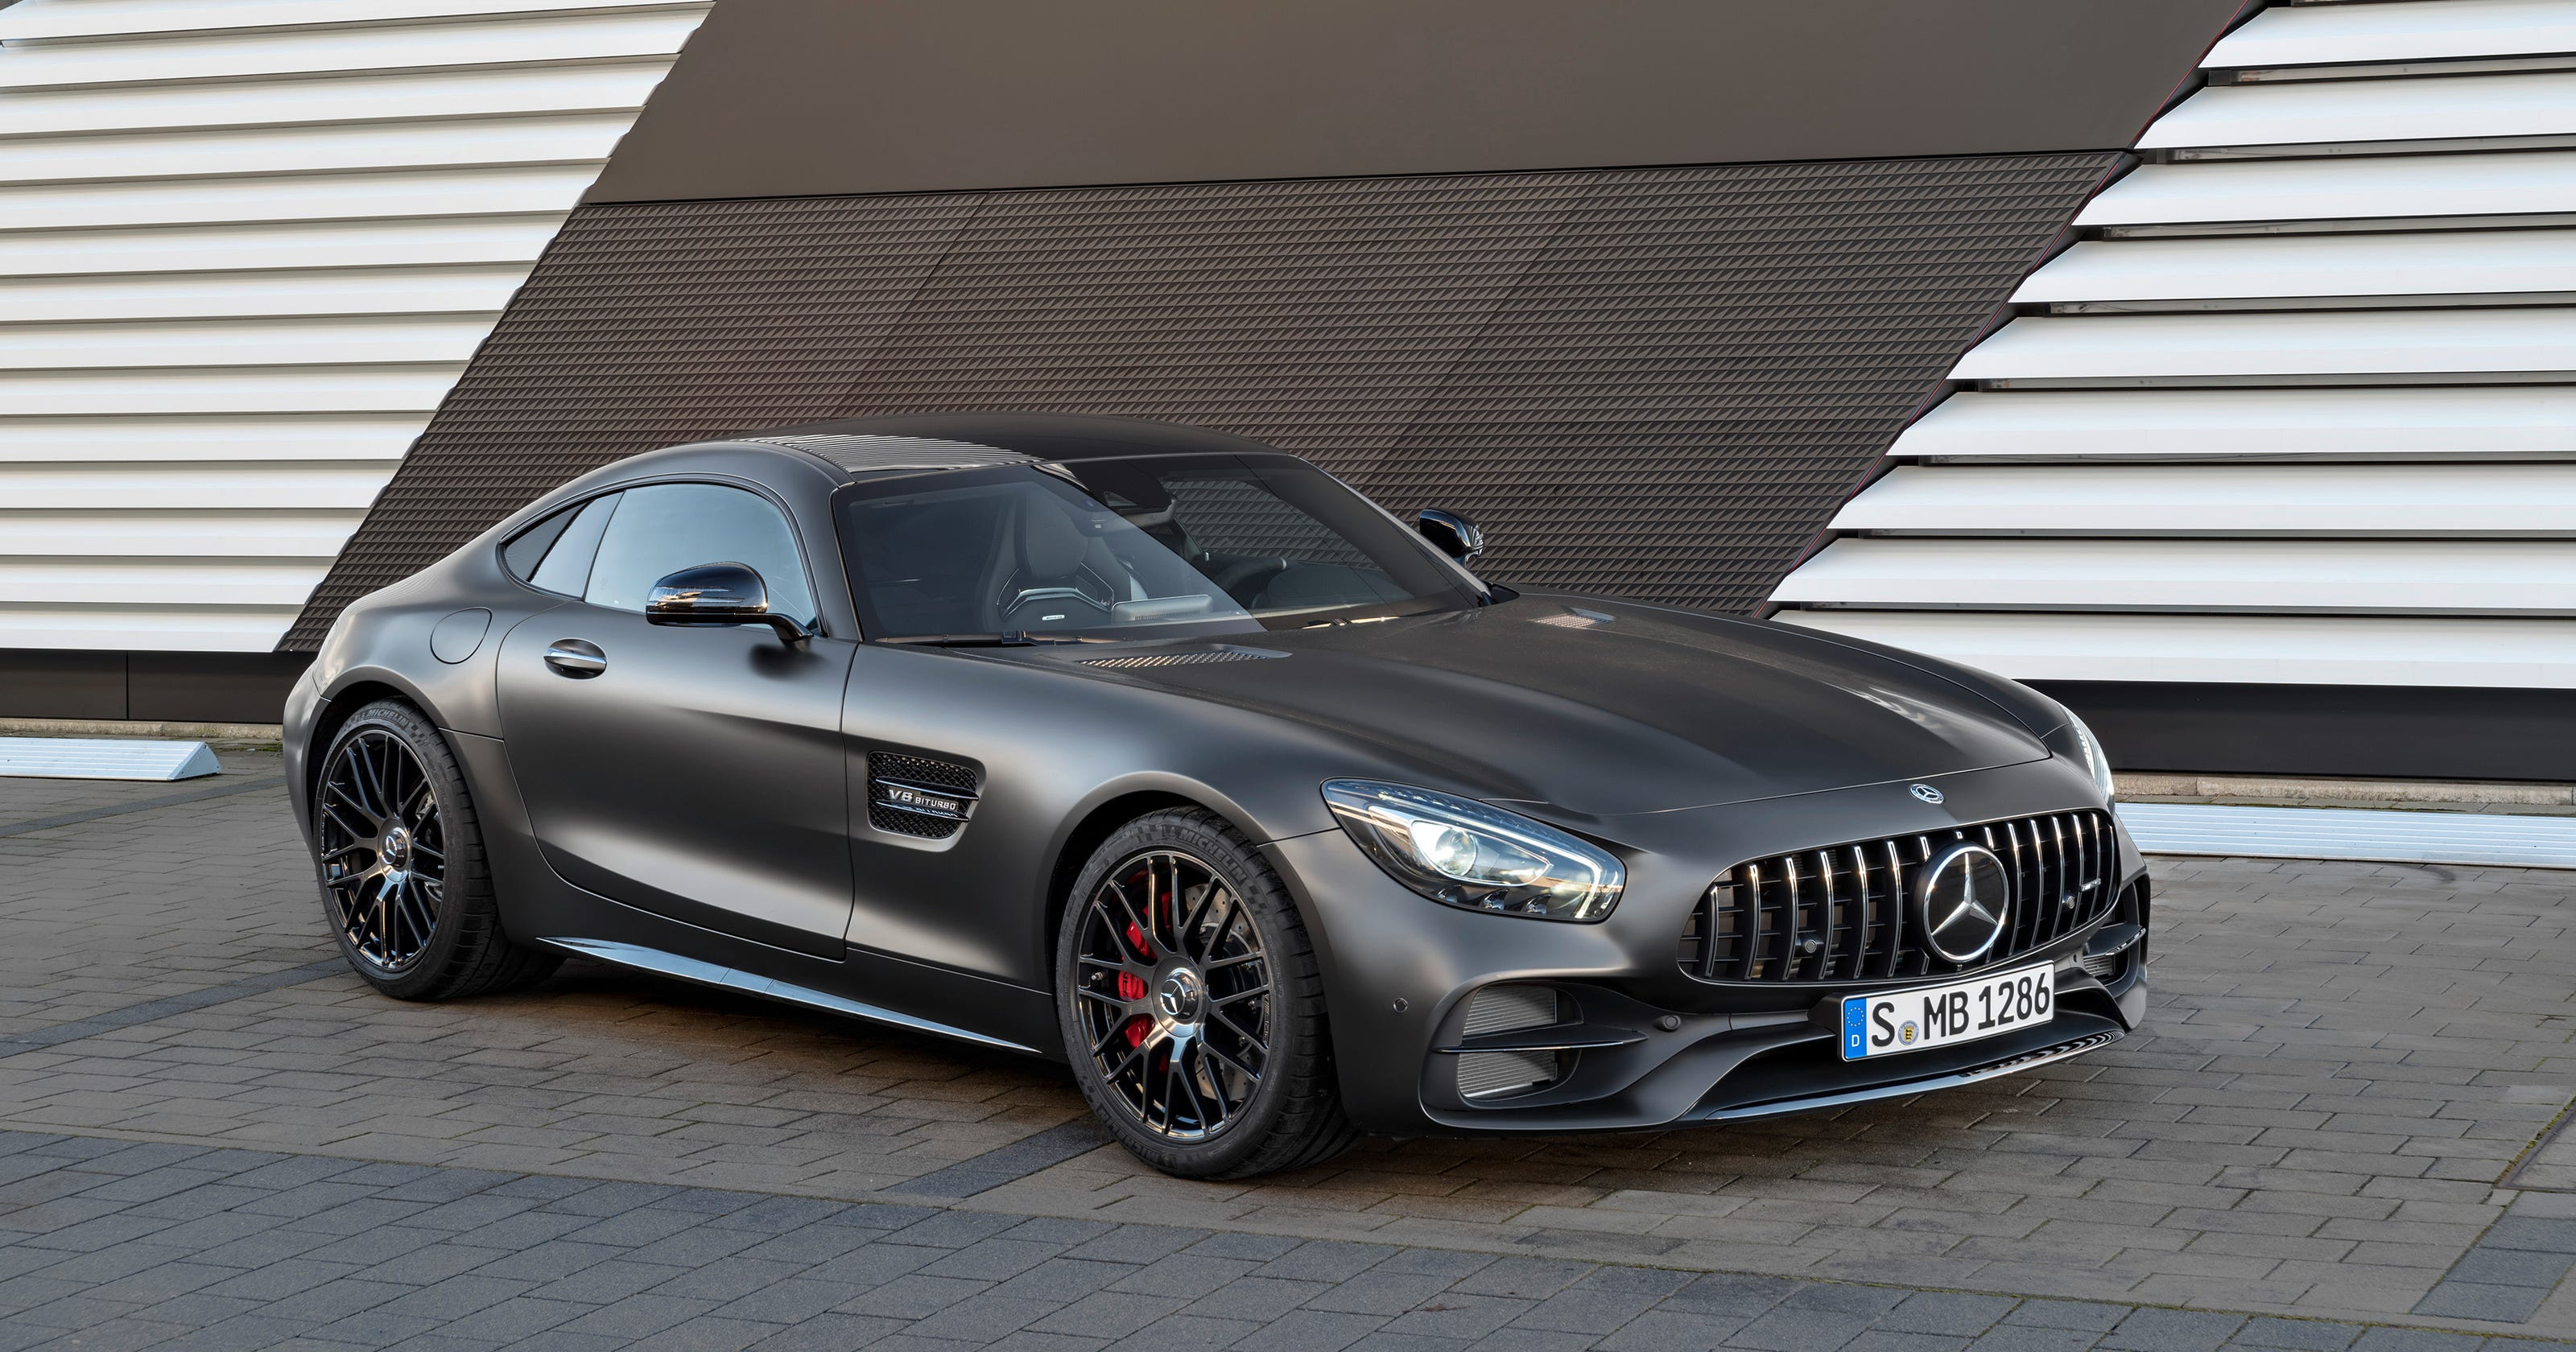 Mercedes Benz Celebrates 50th Anniversary With 2018 Gt C Coupe